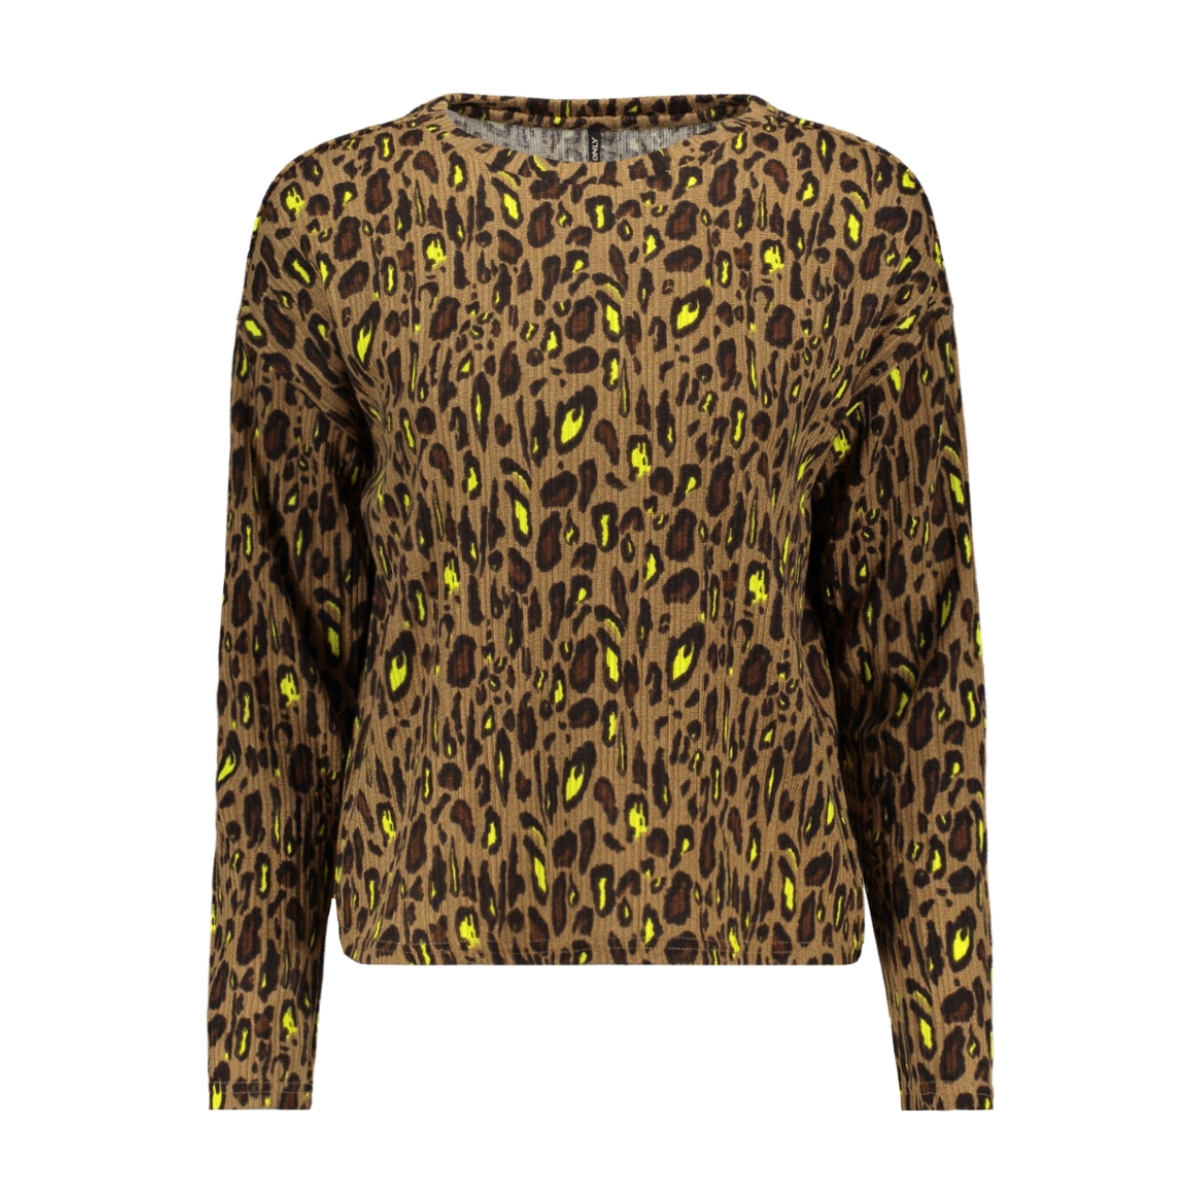 onllea l/s top jrs 15193156 only trui toasted coconut/cool leo 1